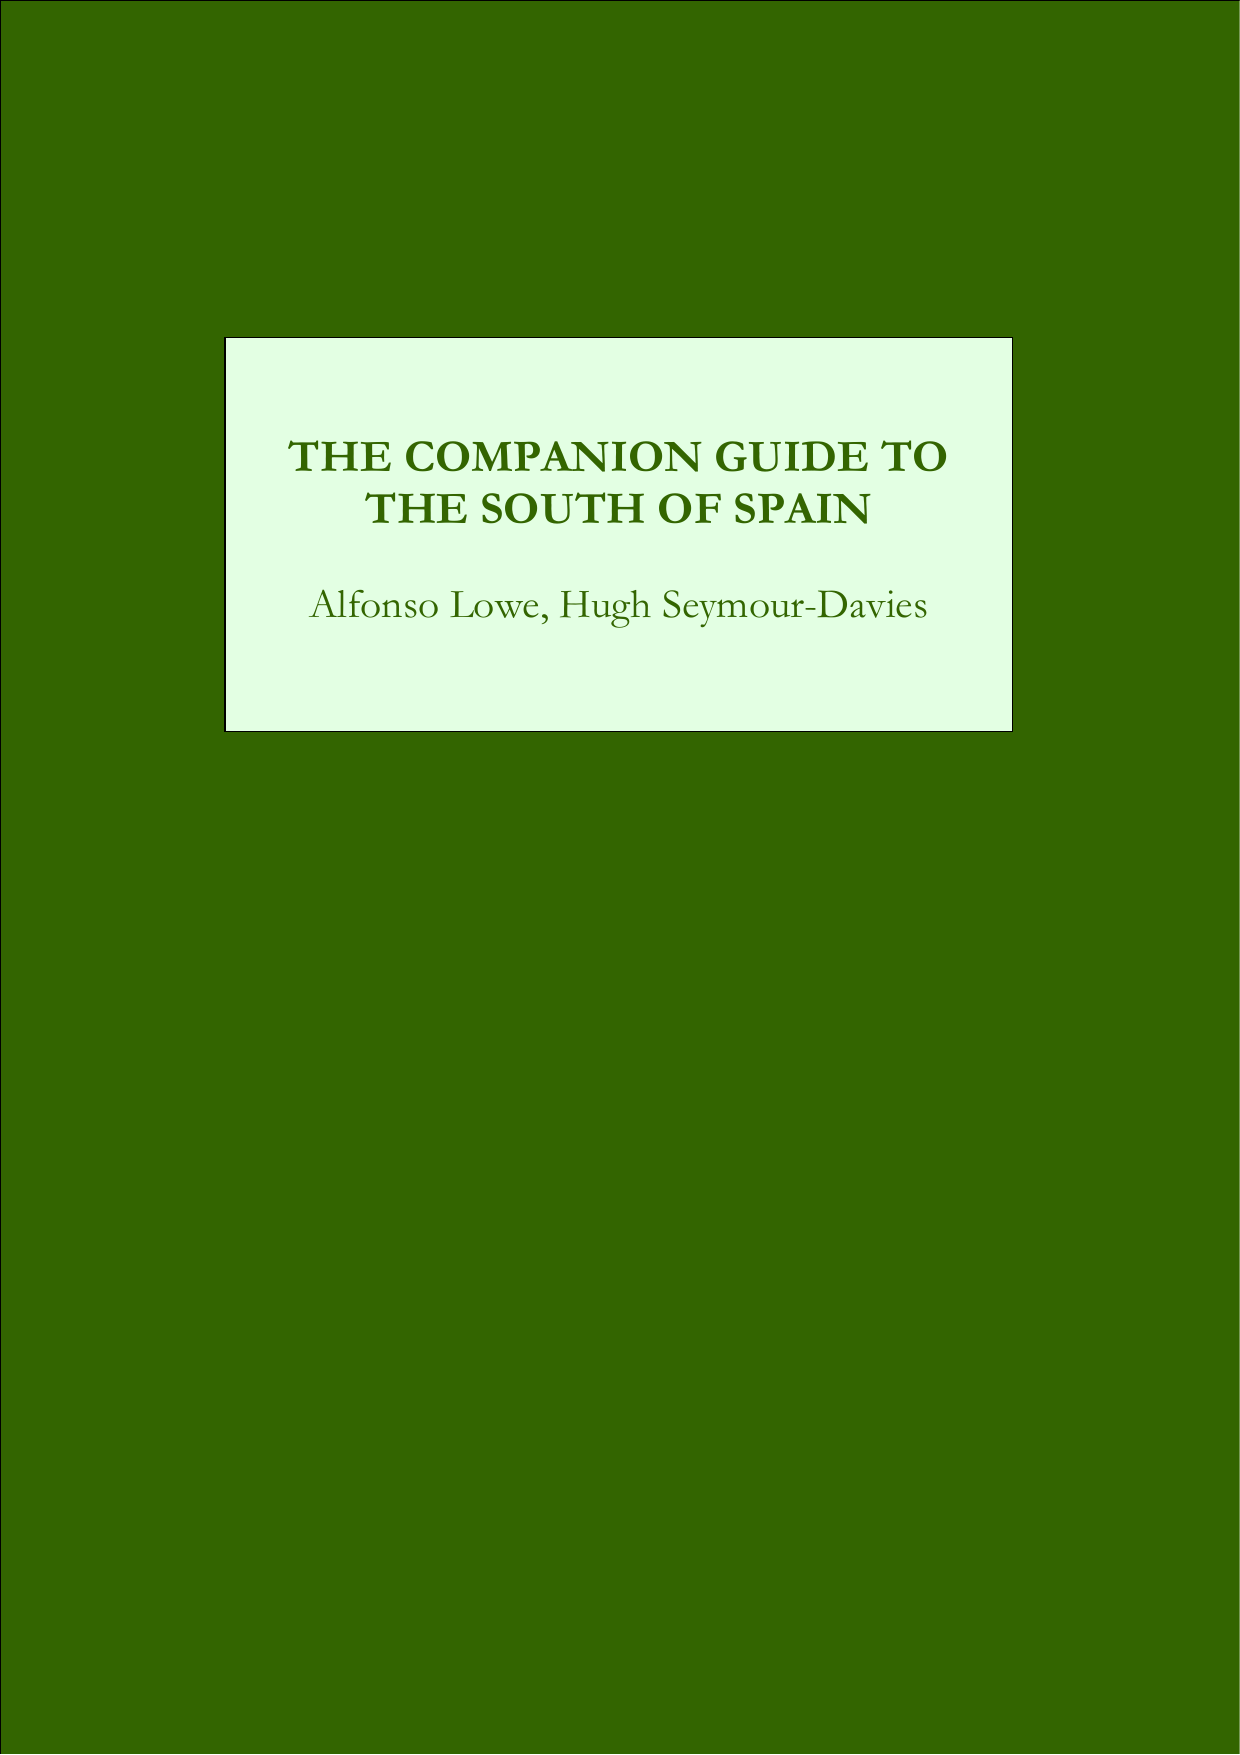 Alfonso Lowe - The Companion Guide to the South of Spain